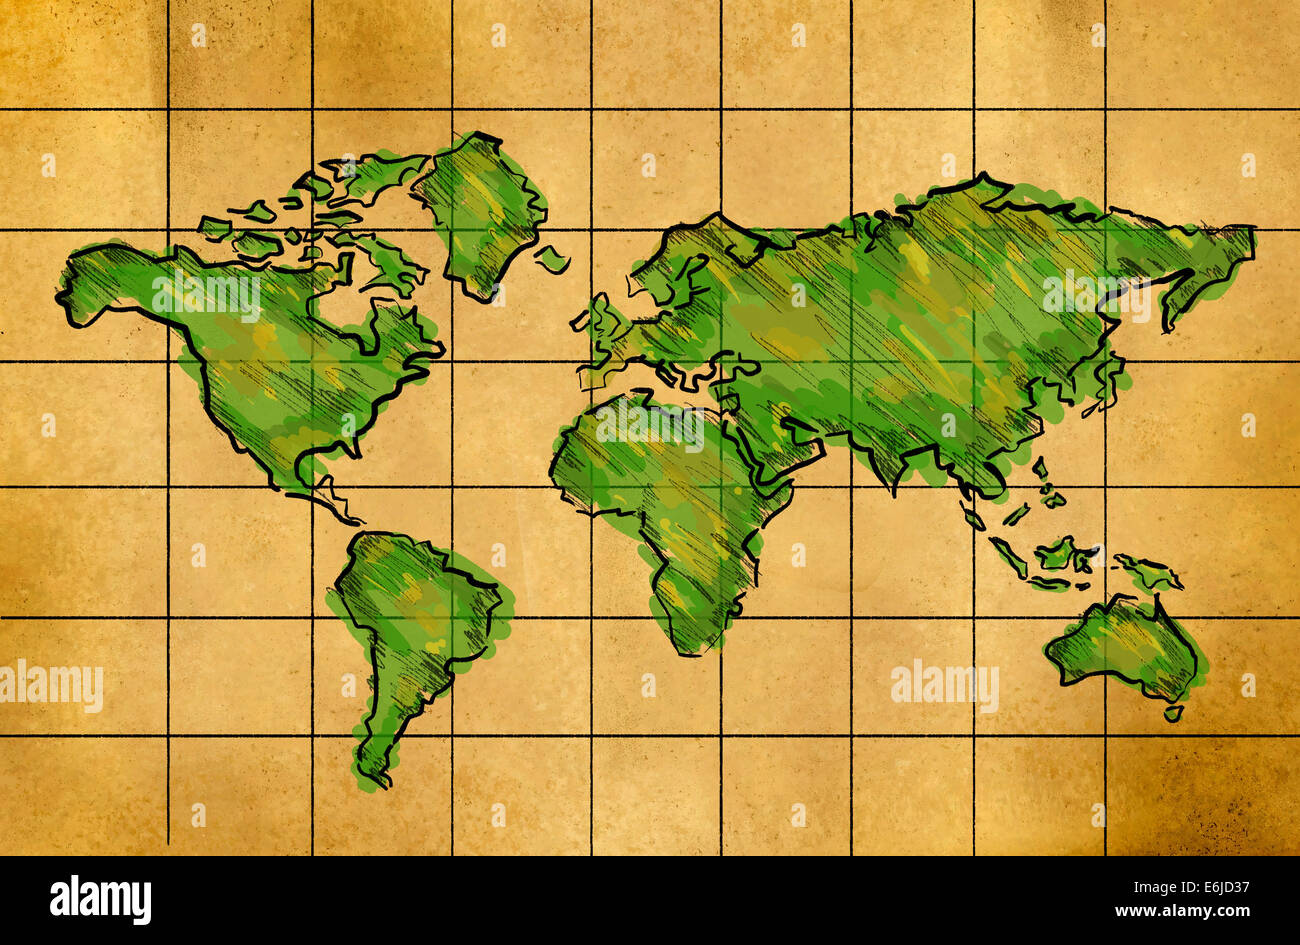 World map sketch green watercolor on old paper grid stock photo world map sketch green watercolor on old paper grid gumiabroncs Image collections